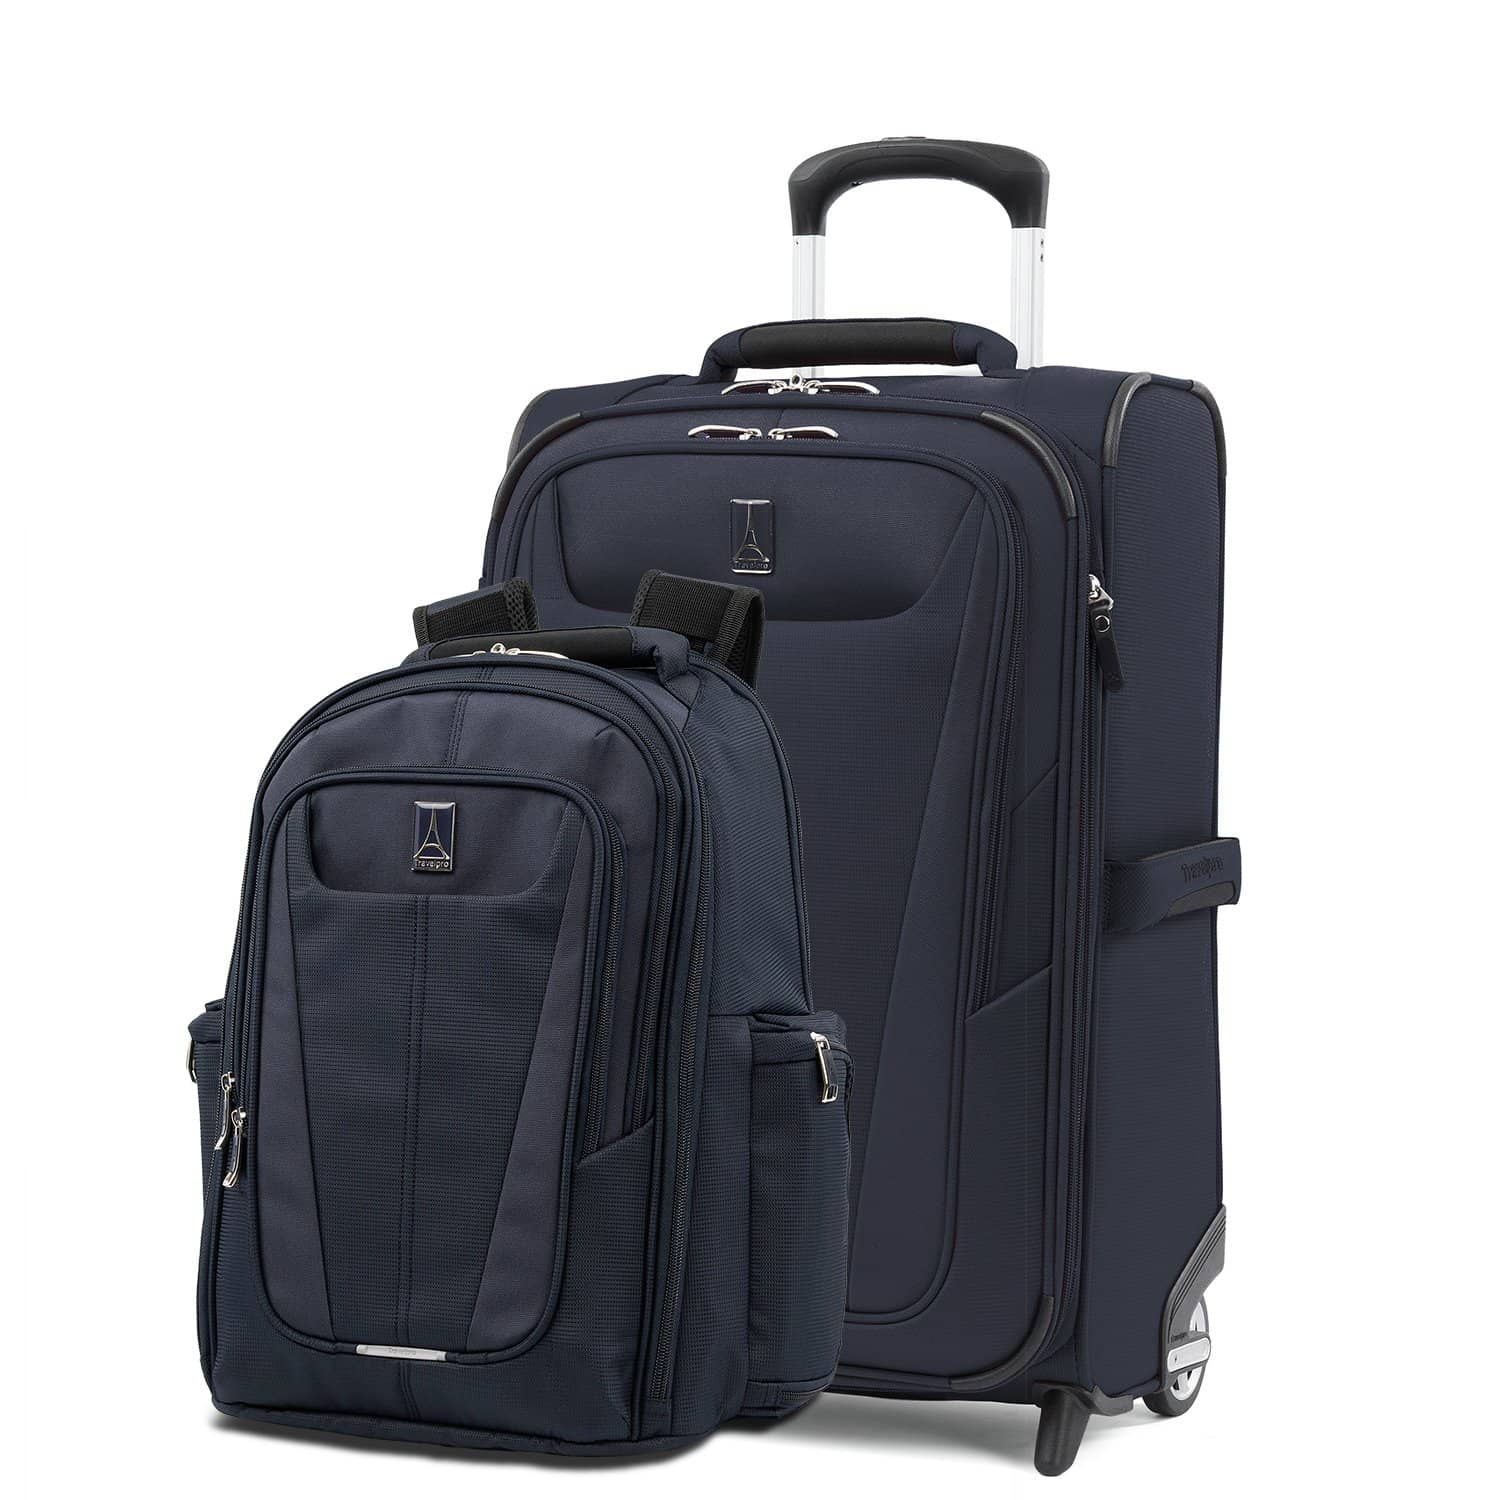 Travelpro Maxlite® 5 On The Go - Luggage Set MIDNIGHT BLUE